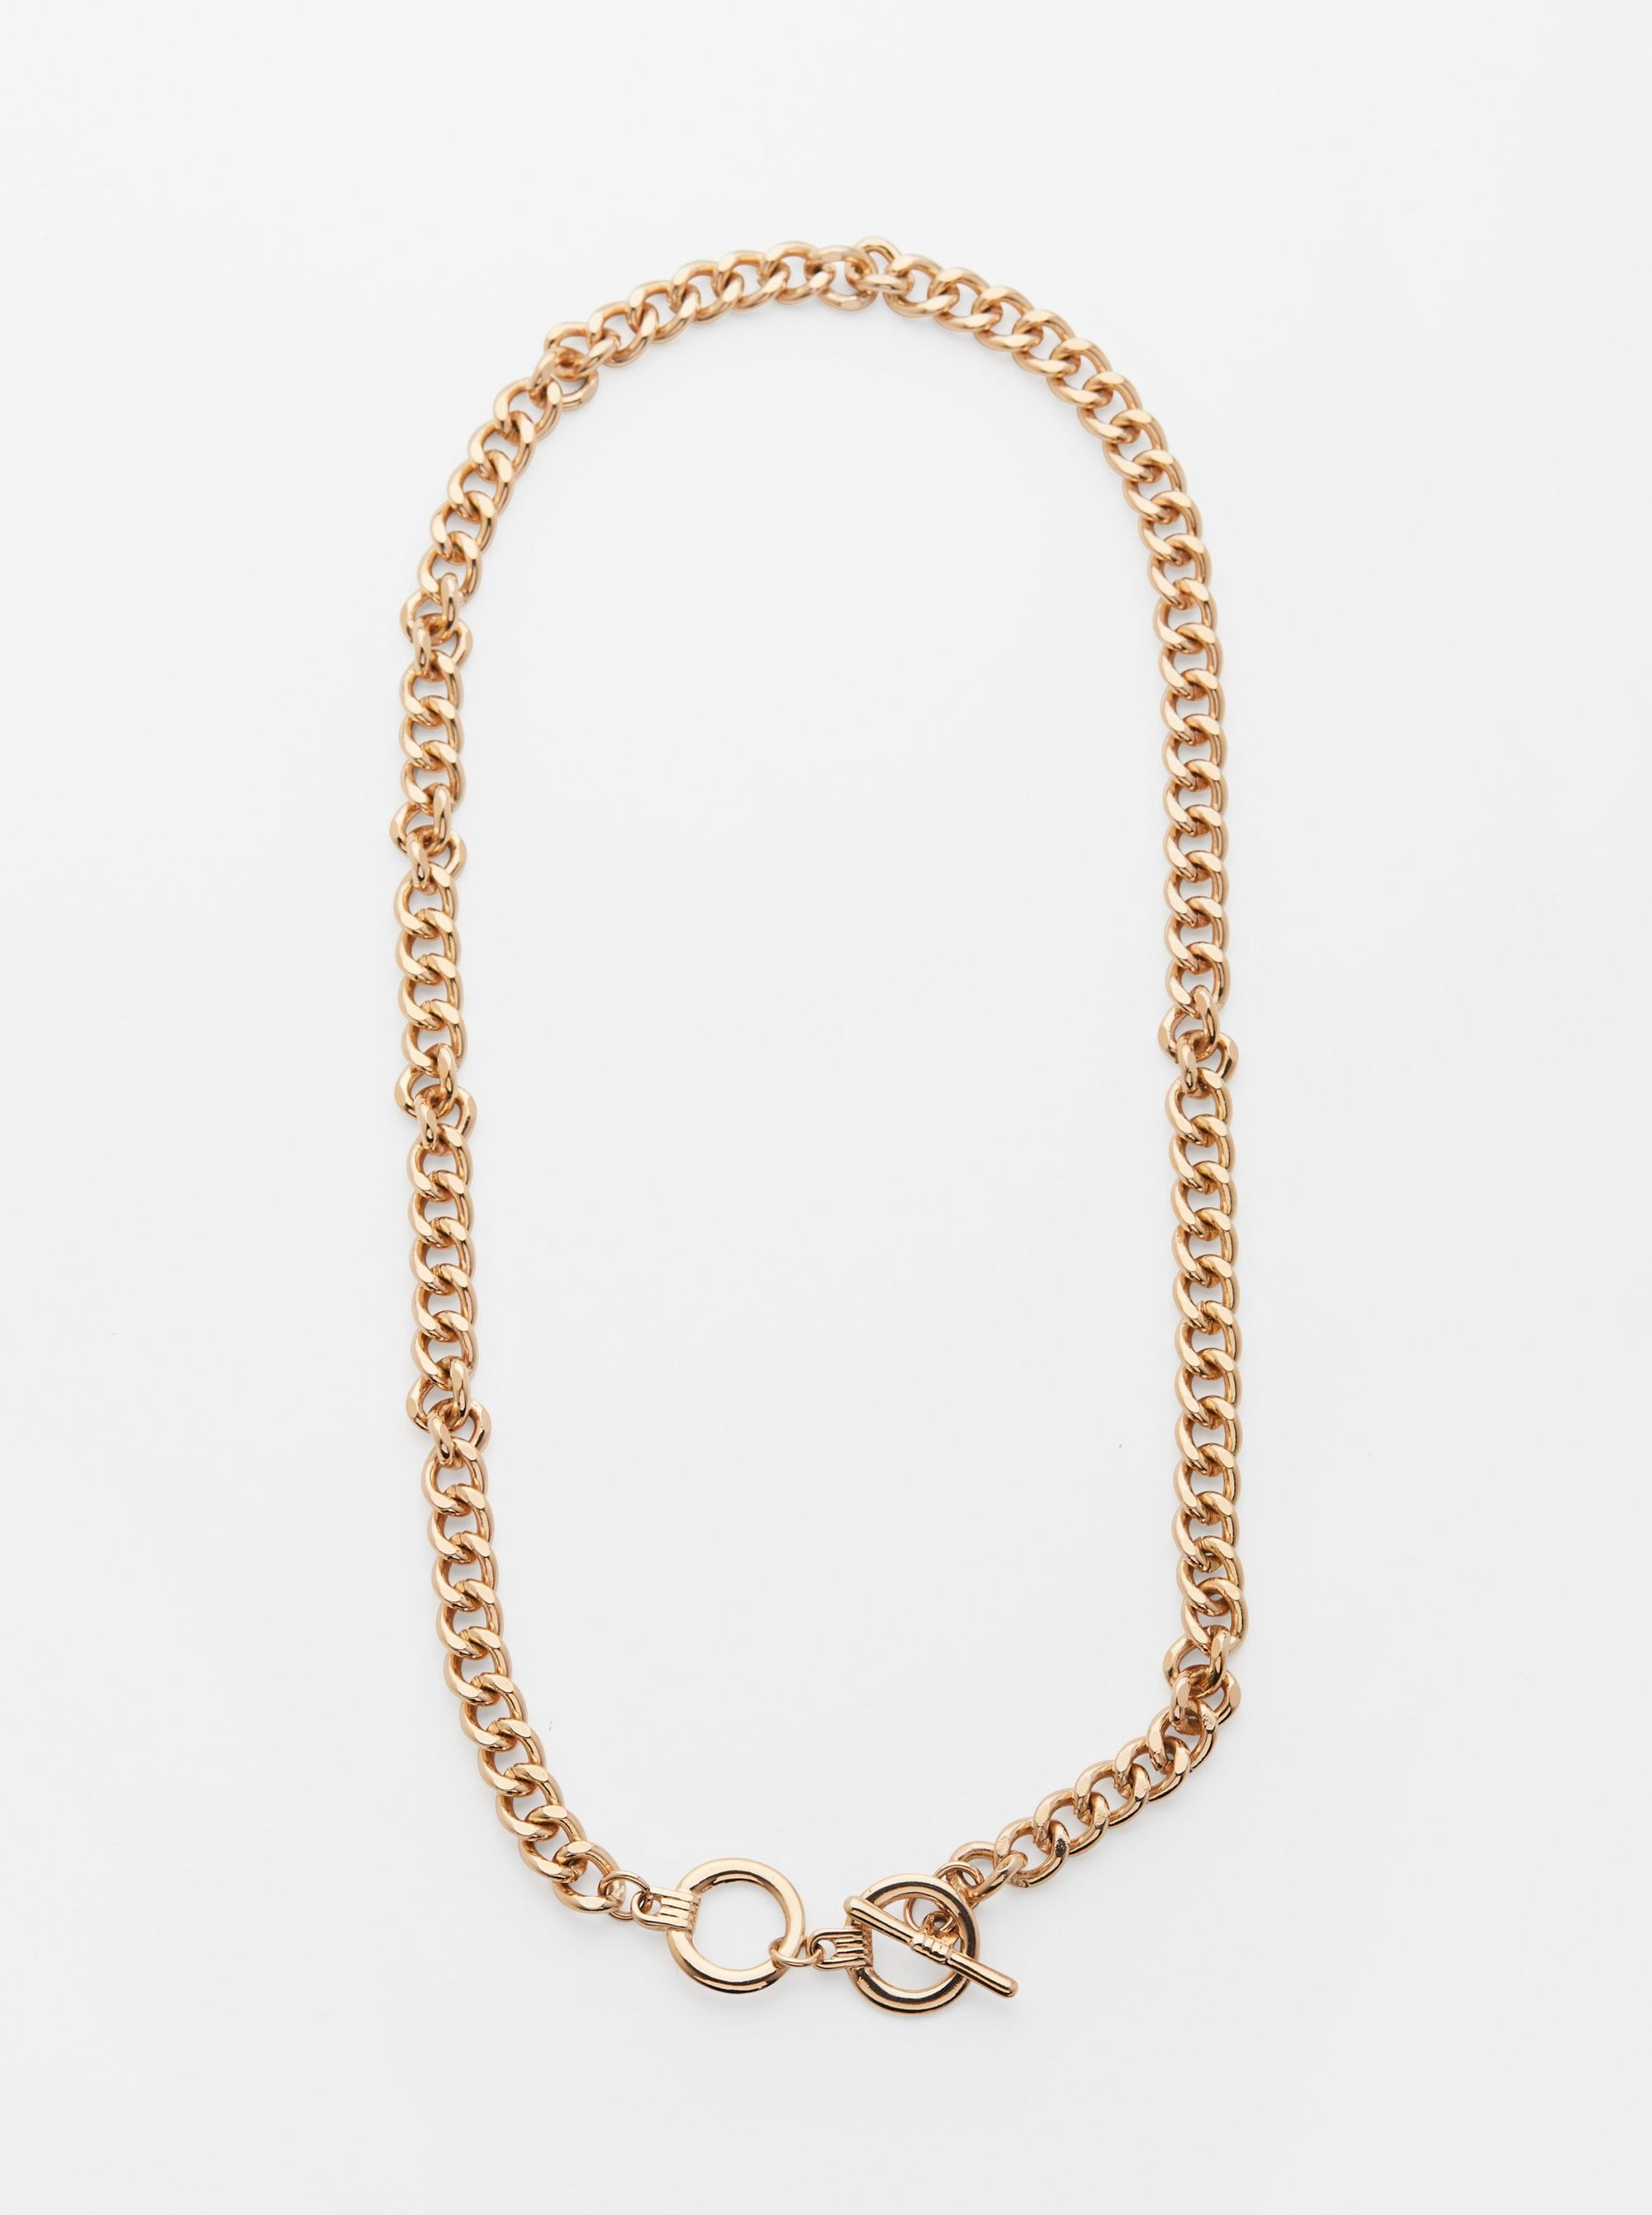 Reliquia Portovenere Necklace in Gold